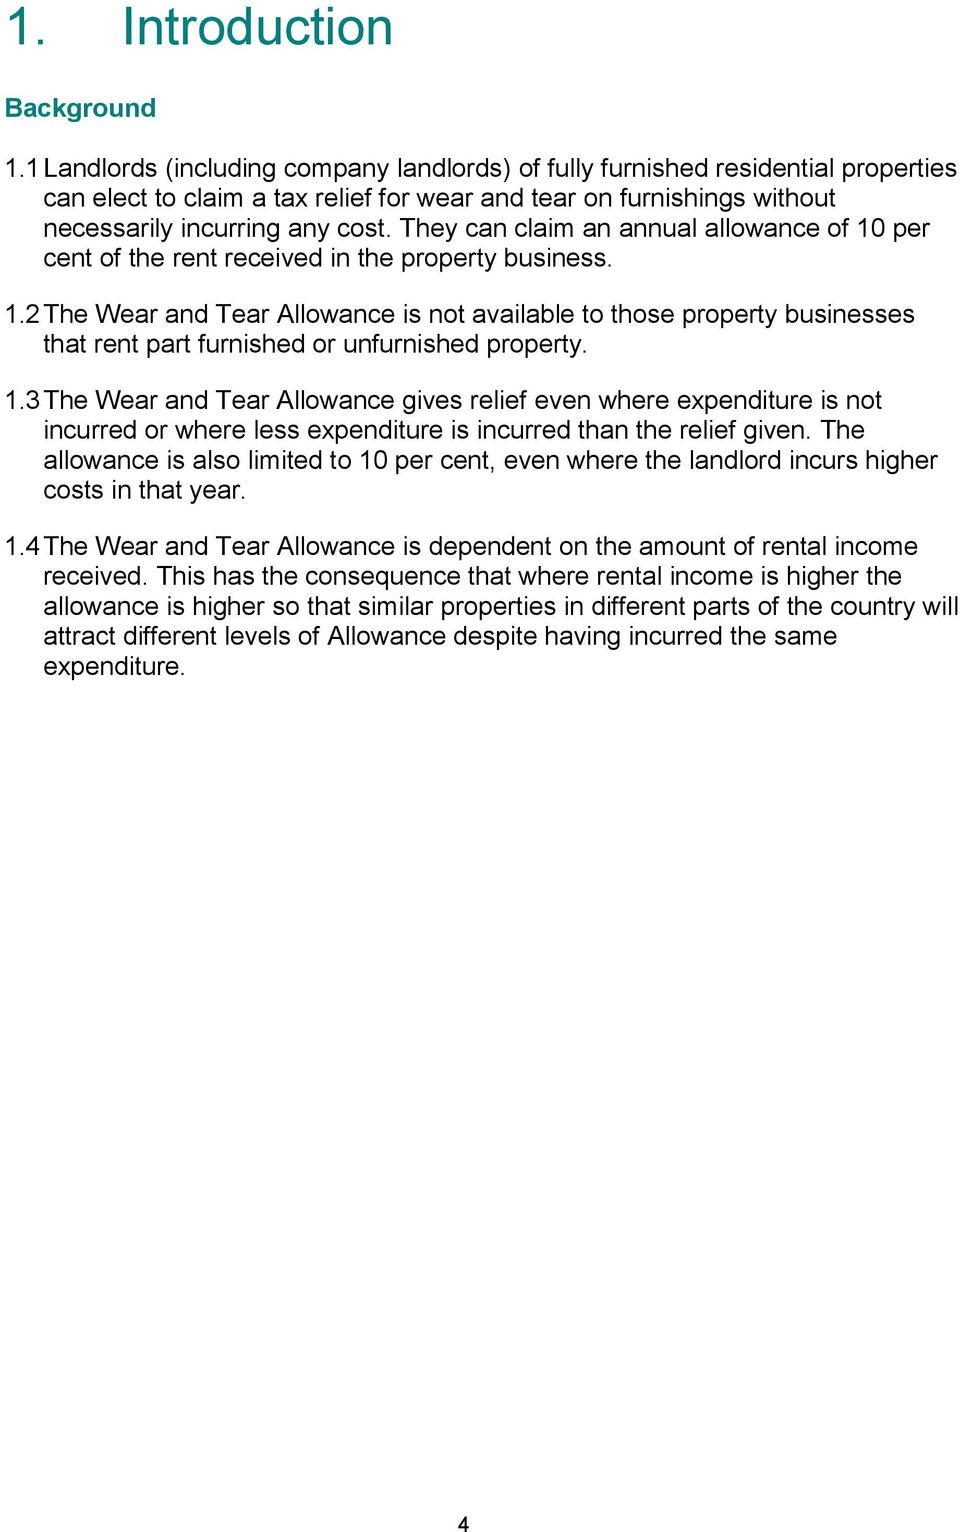 They can claim an annual allowance of 10 per cent of the rent received in the property business. 1.2 The Wear and Tear Allowance is not available to those property businesses that rent part furnished or unfurnished property.